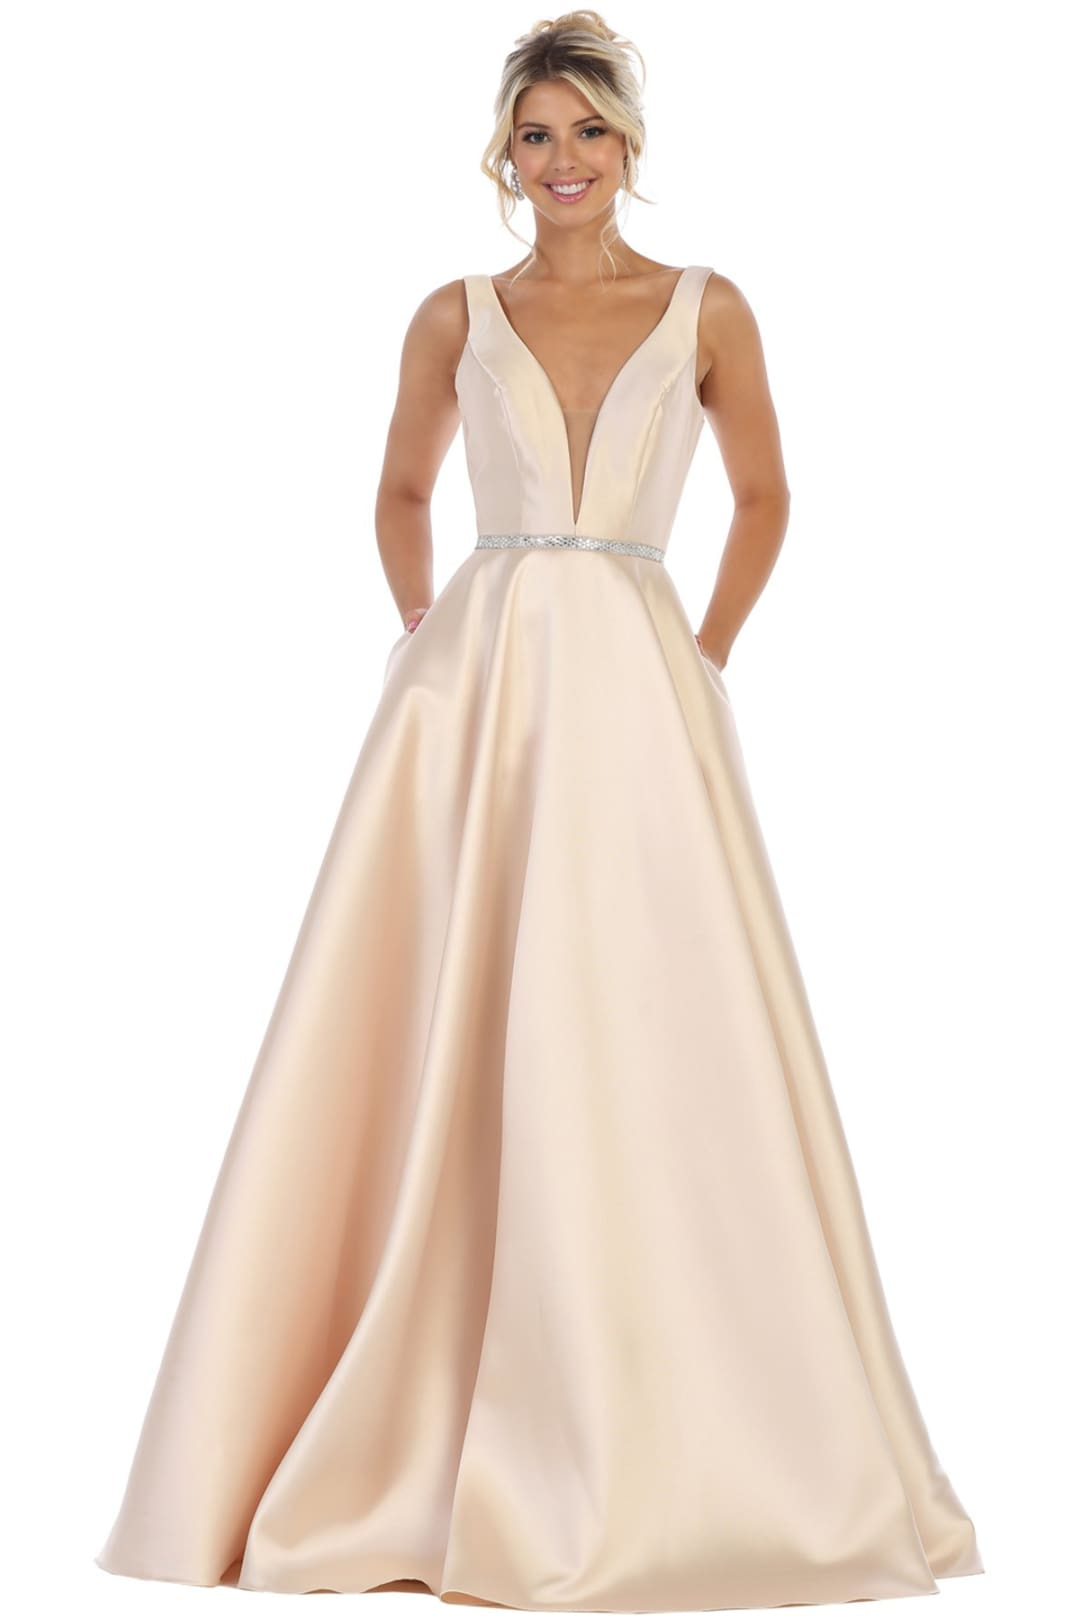 Simple Sleeveless Prom Dress - Champagne / 4